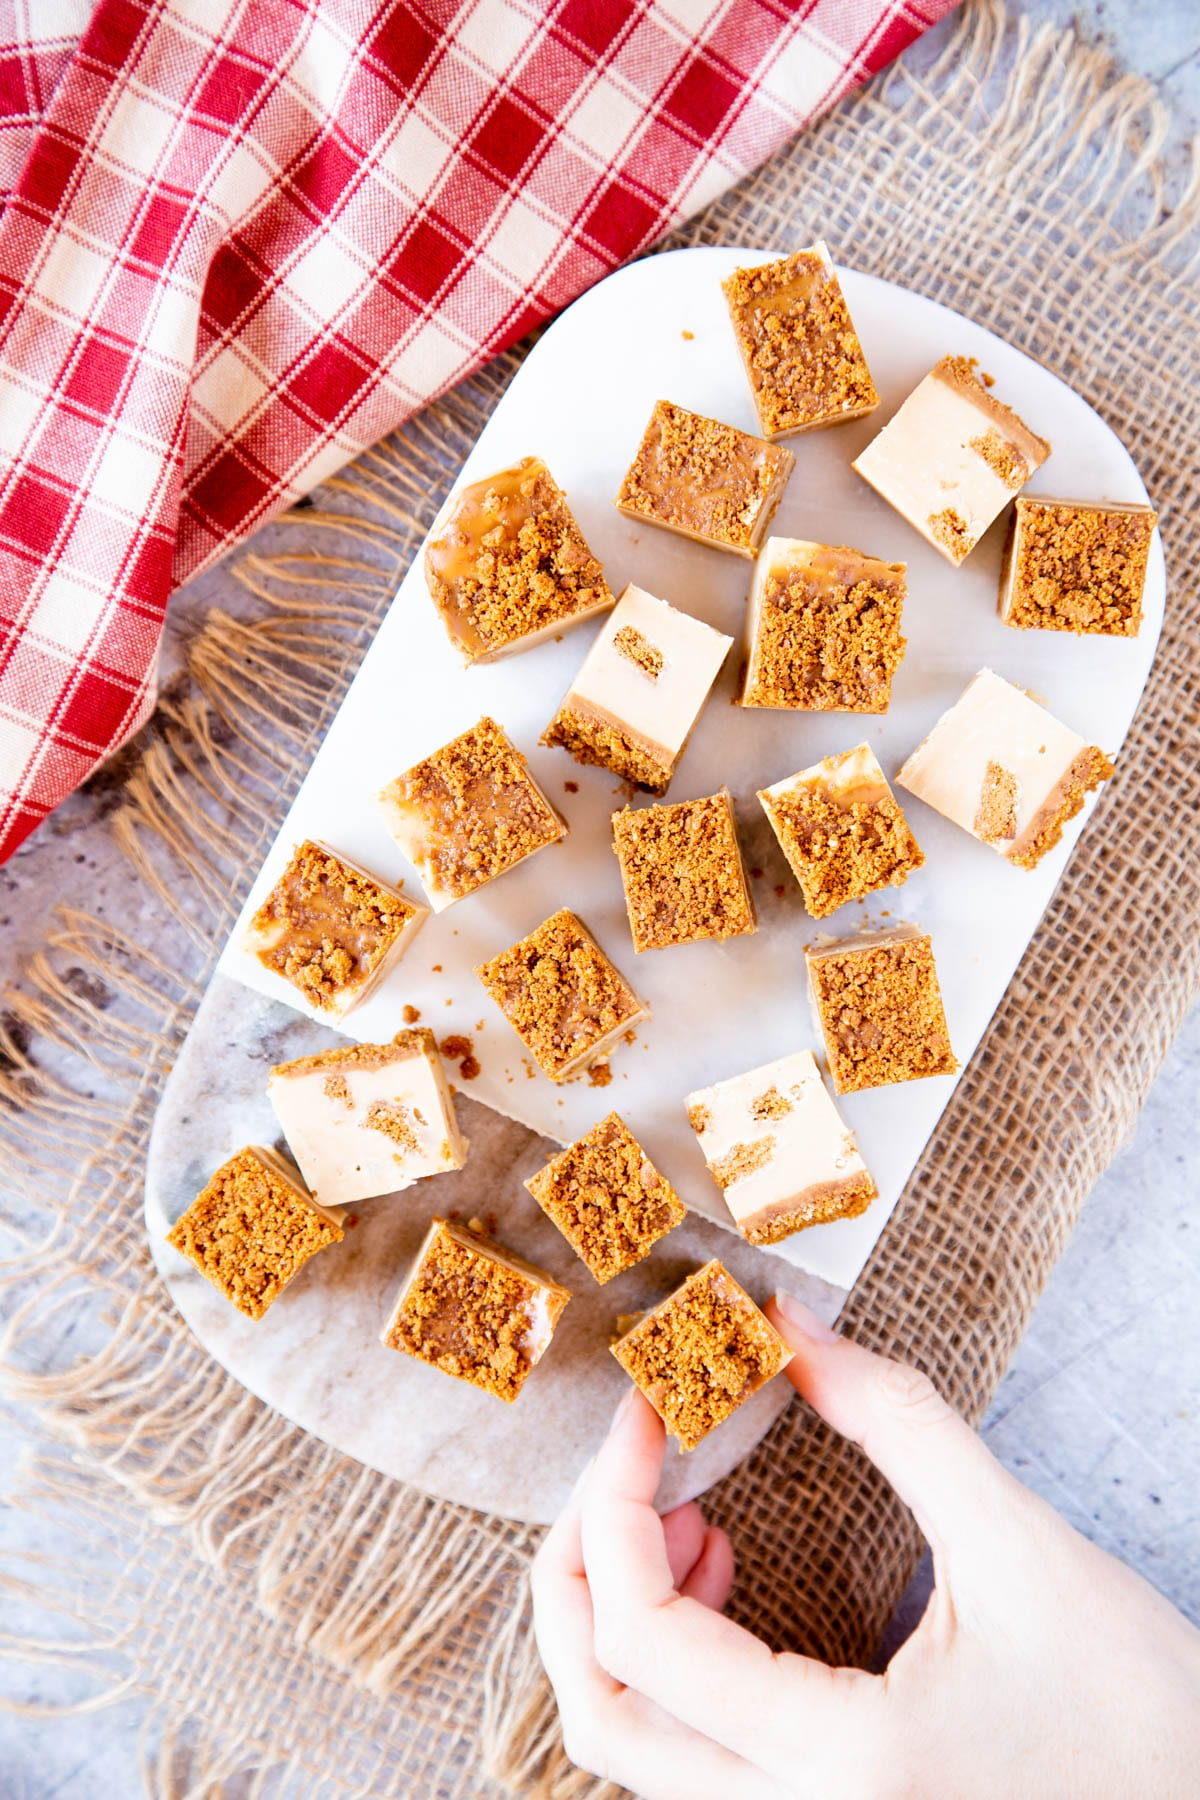 From above, delicious bite-sized pieces of Speculoos fudge arranged on a marble board. A hand is reaching in to take one piece.